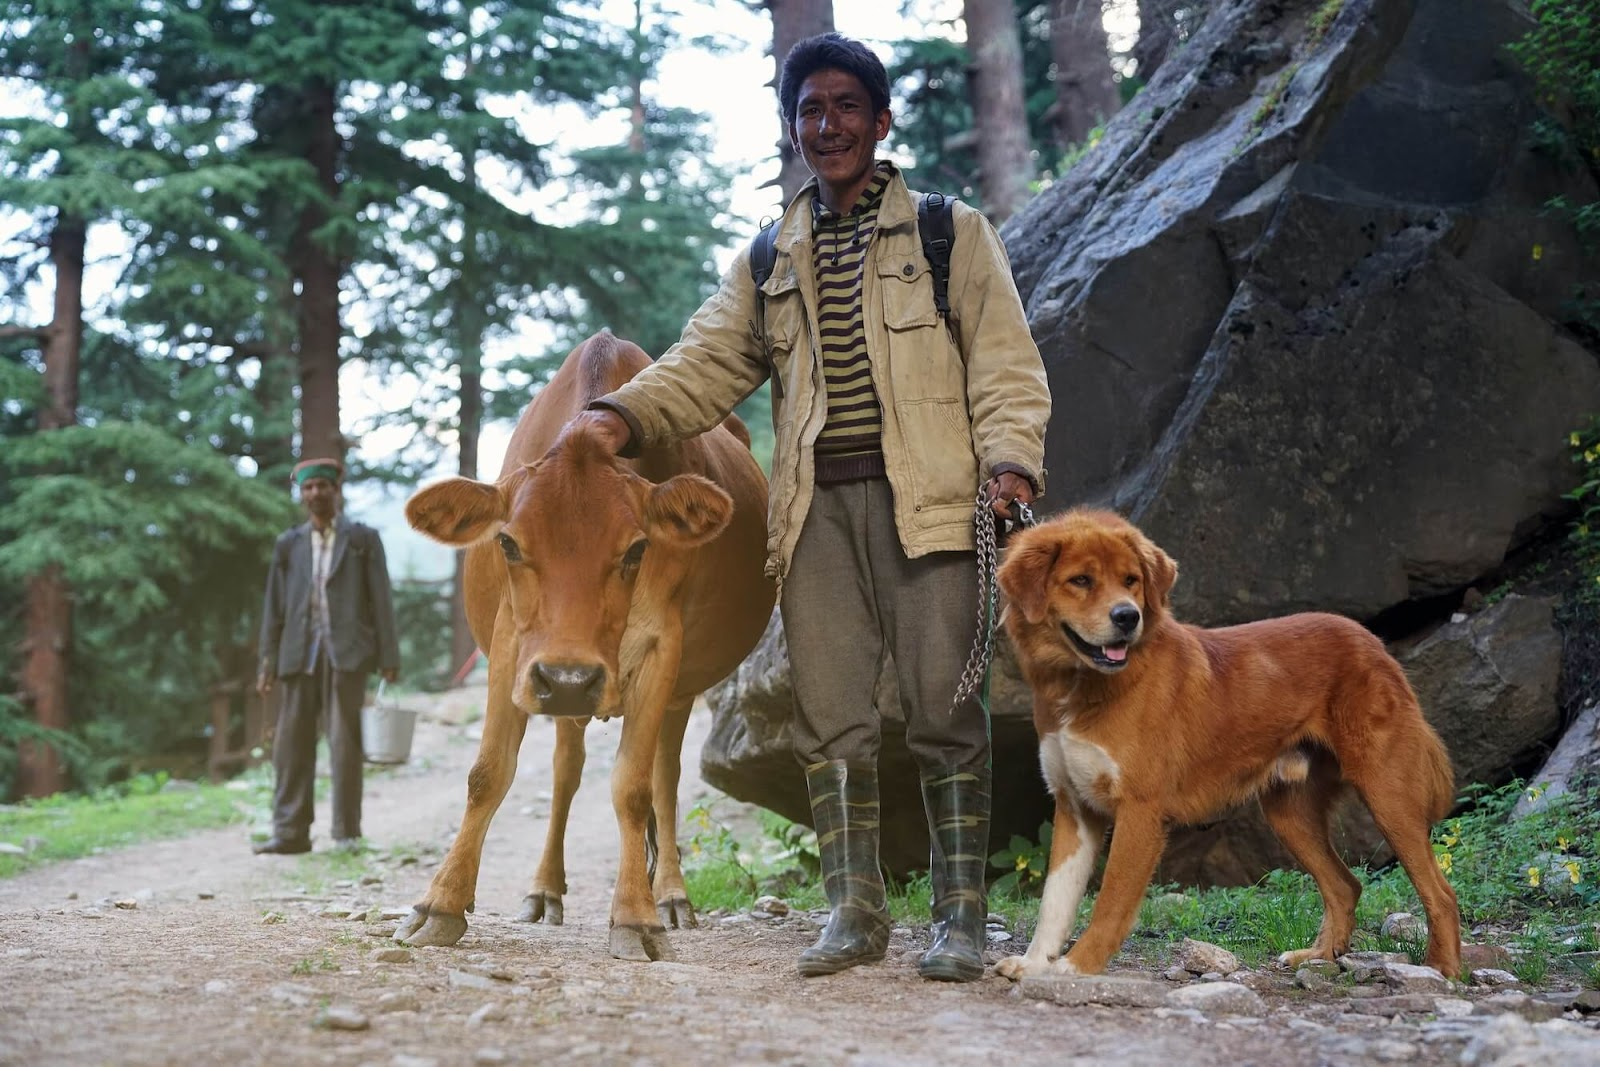 A man in the forest smiles next to a brown dog and a brown cow